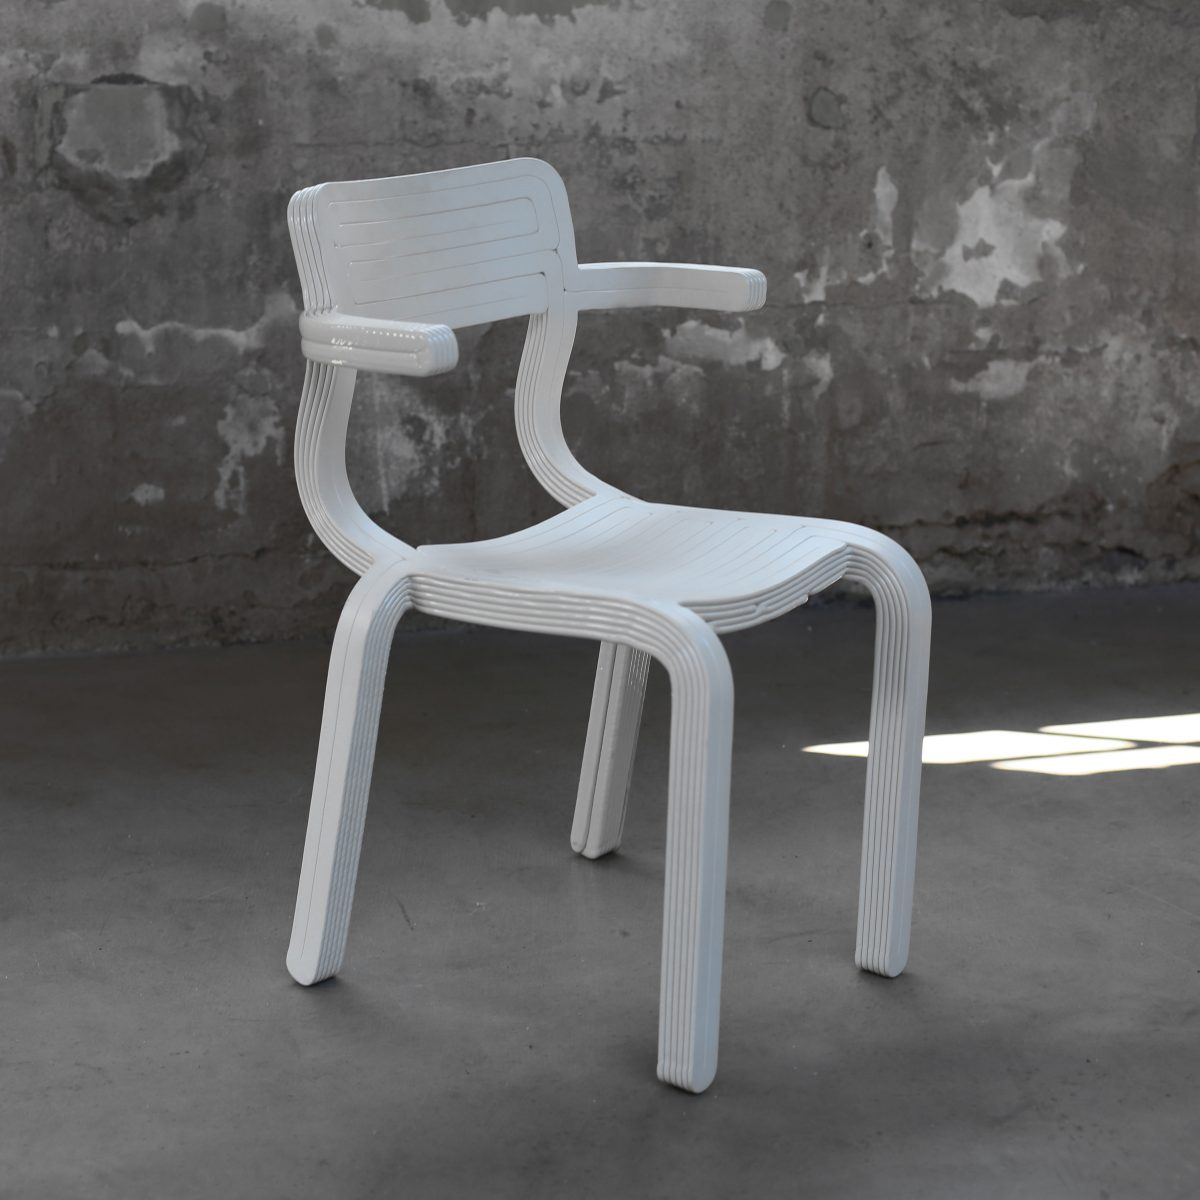 RvR Chair Wit Natural Photo Studio Dirk Vander Kooij